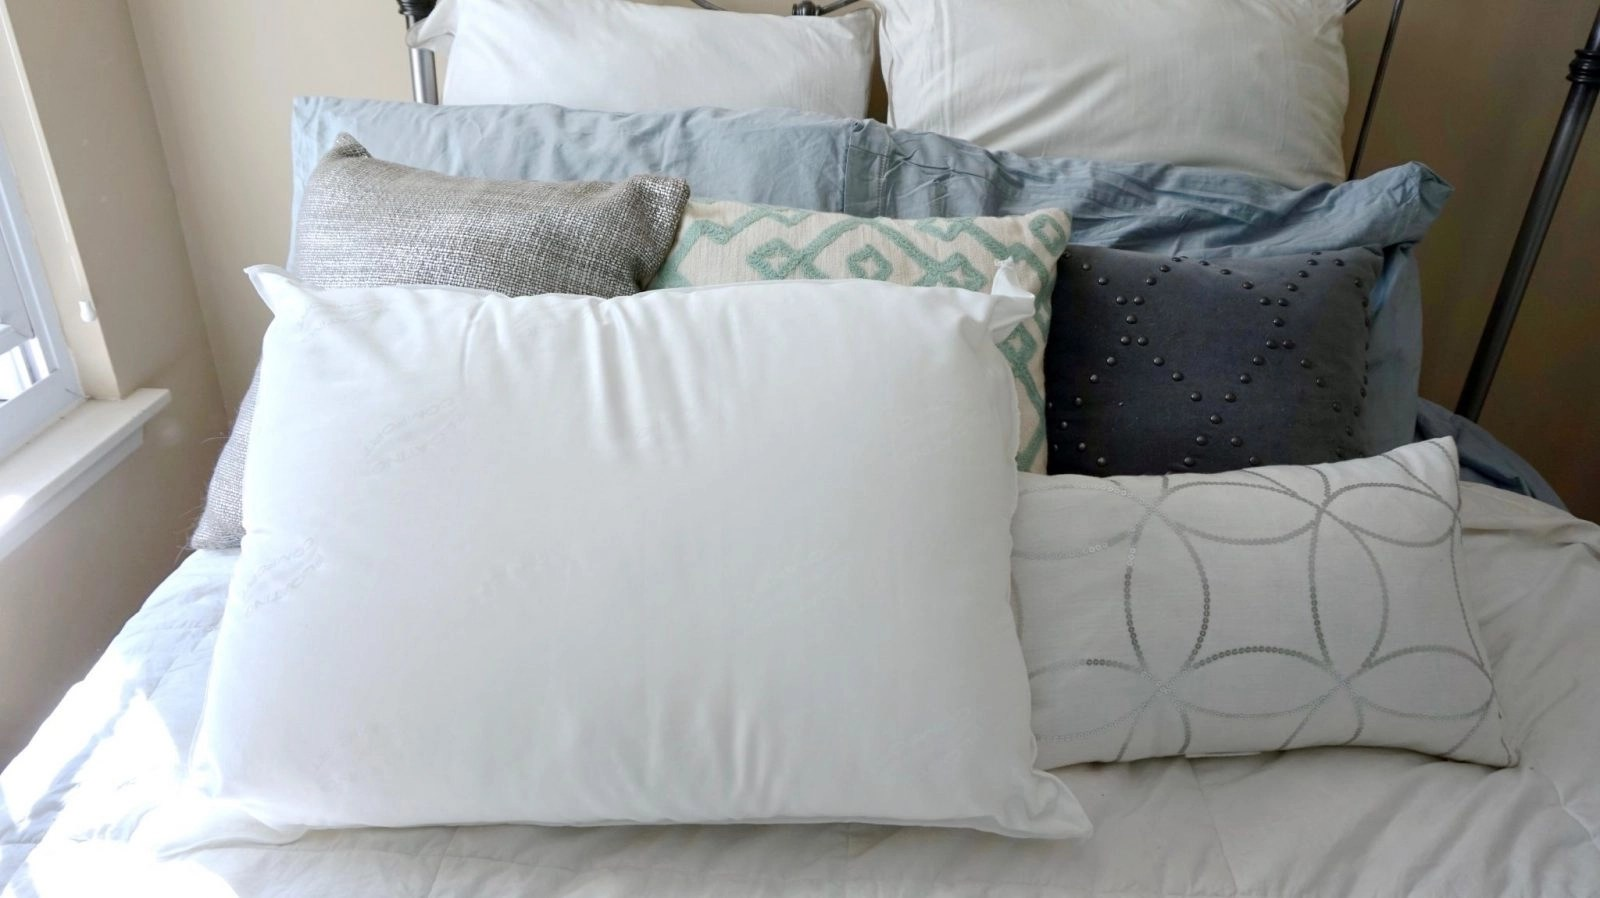 Floating Comfort Waterbased Pillow Placed on Bed